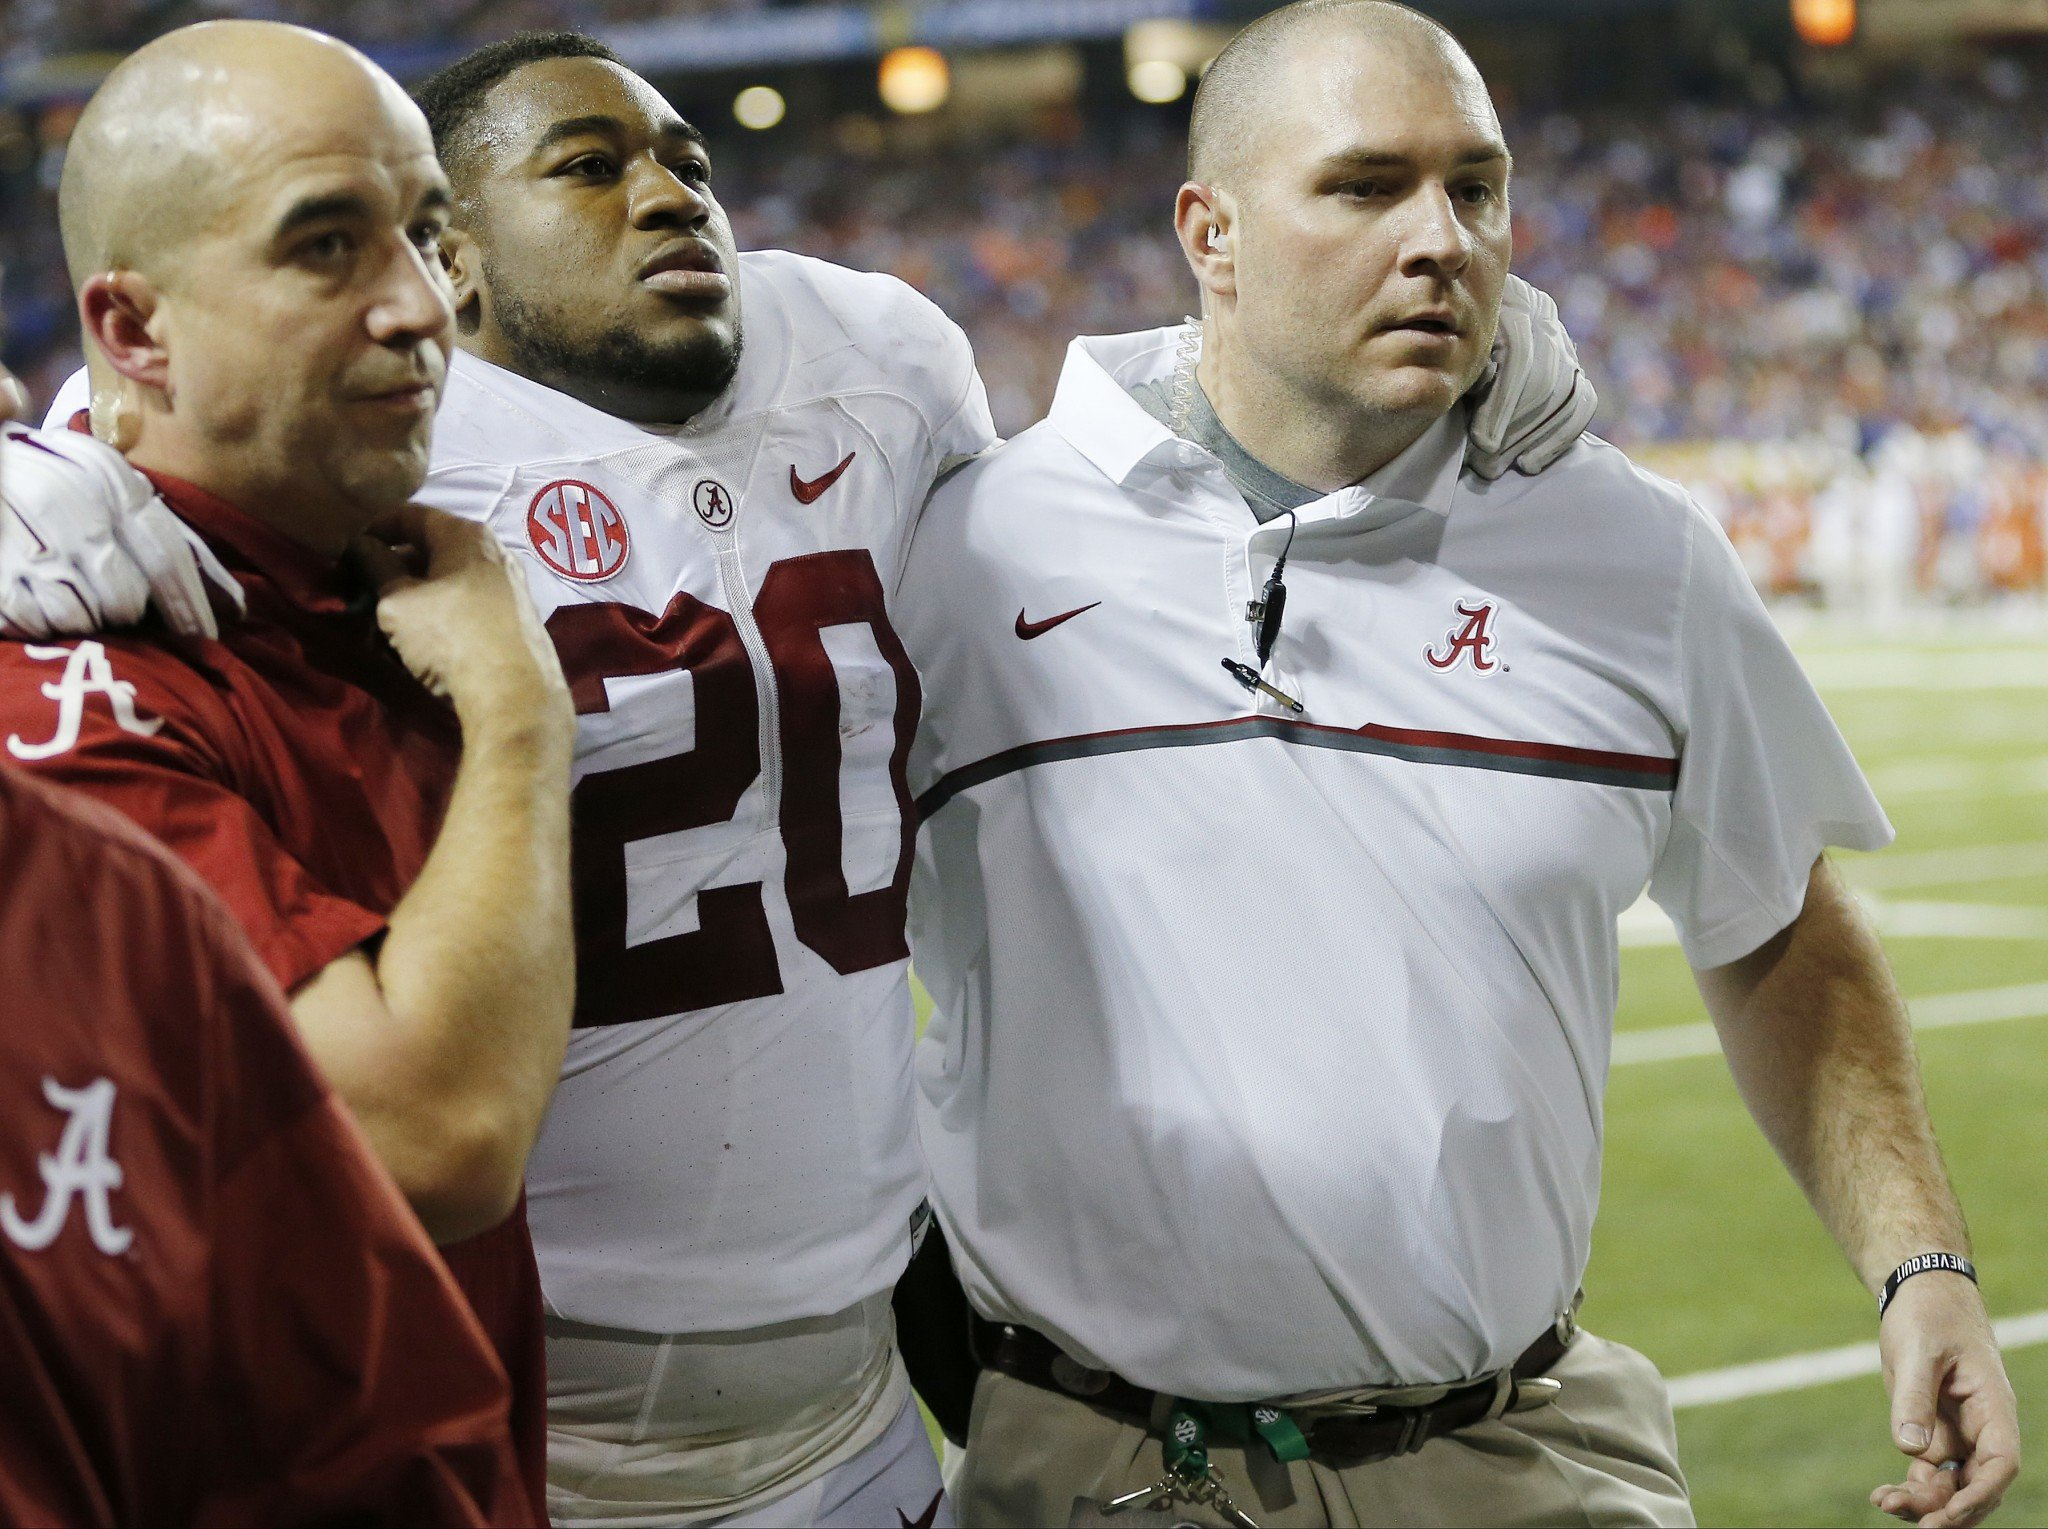 Alabama middle linebacker Shaun Dion Hamilton suffered a knee injury and will miss the rest of the season (AP)